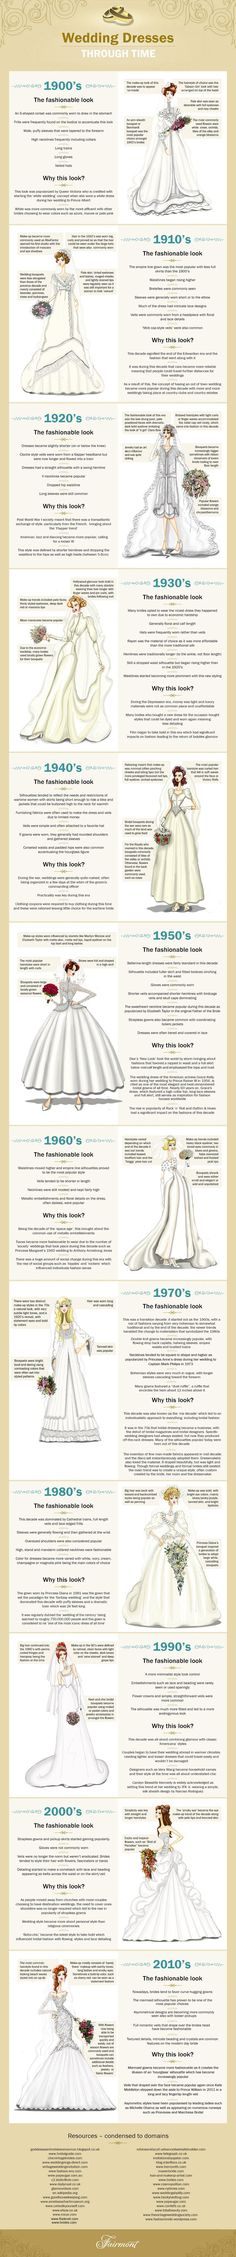 Bridal gown fashion trends have changed so much in the last century! Which wedding dress decade's style is your favorite?